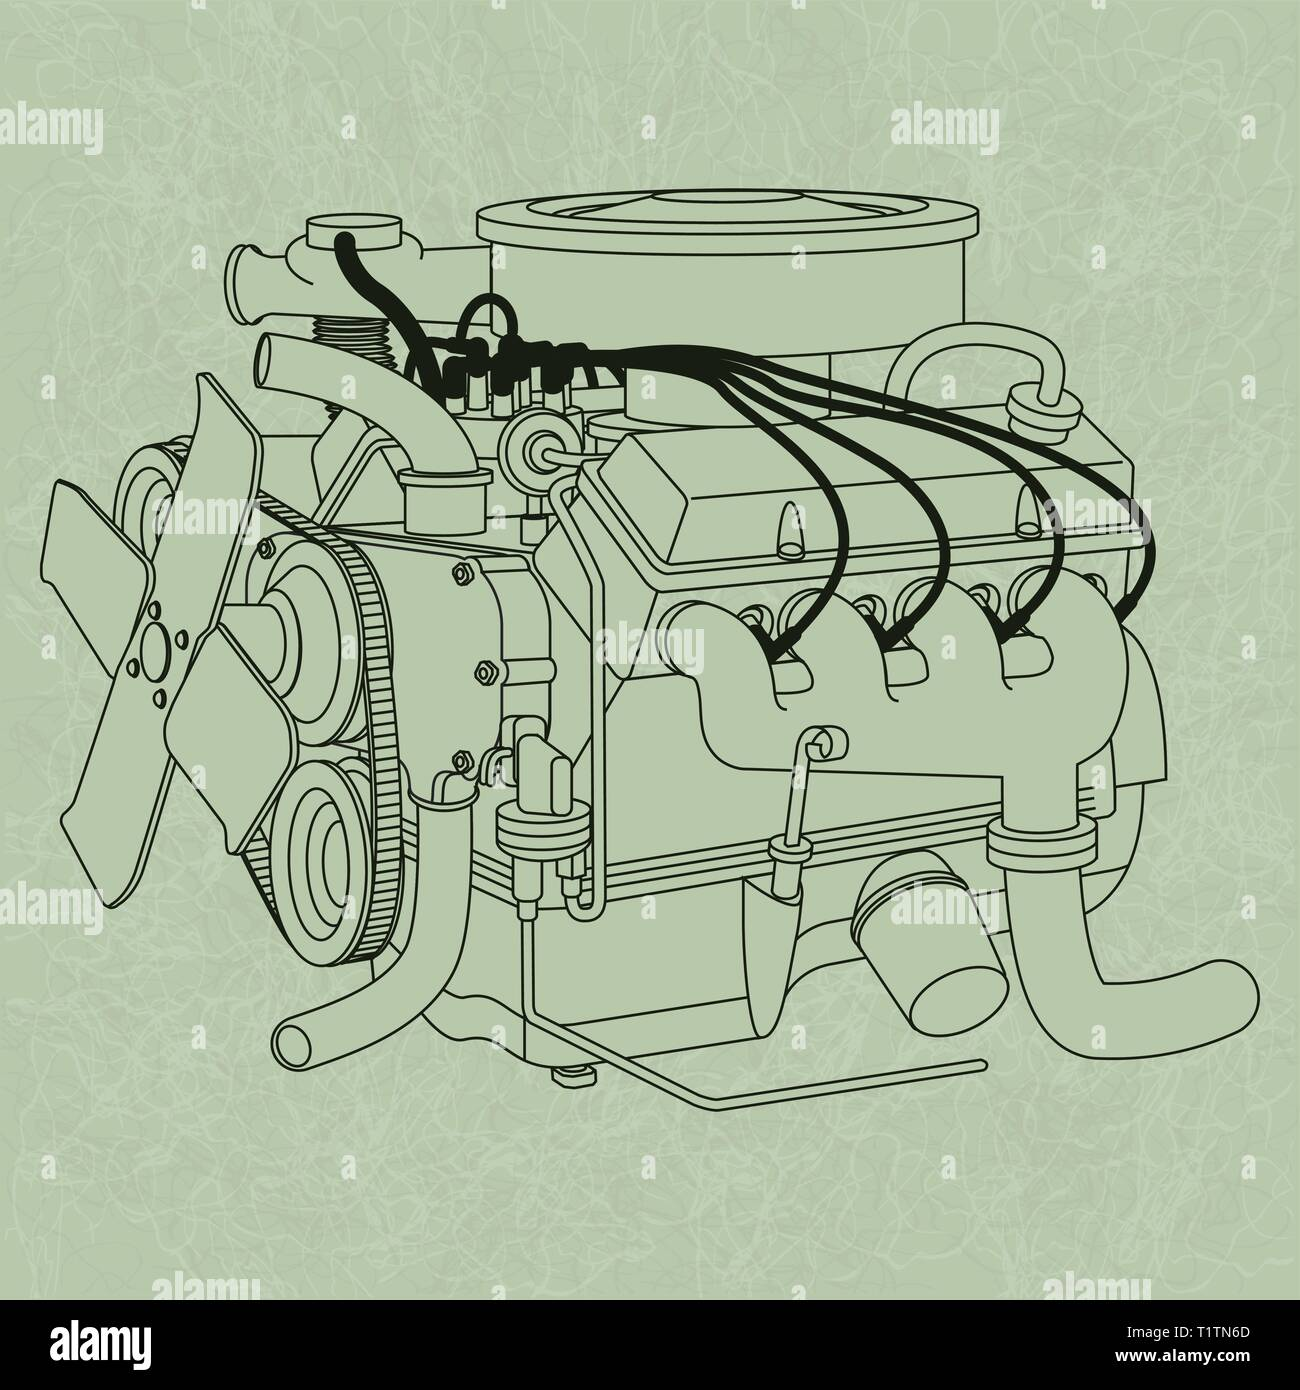 Car Engine Diagram High Resolution Stock Photography And Images